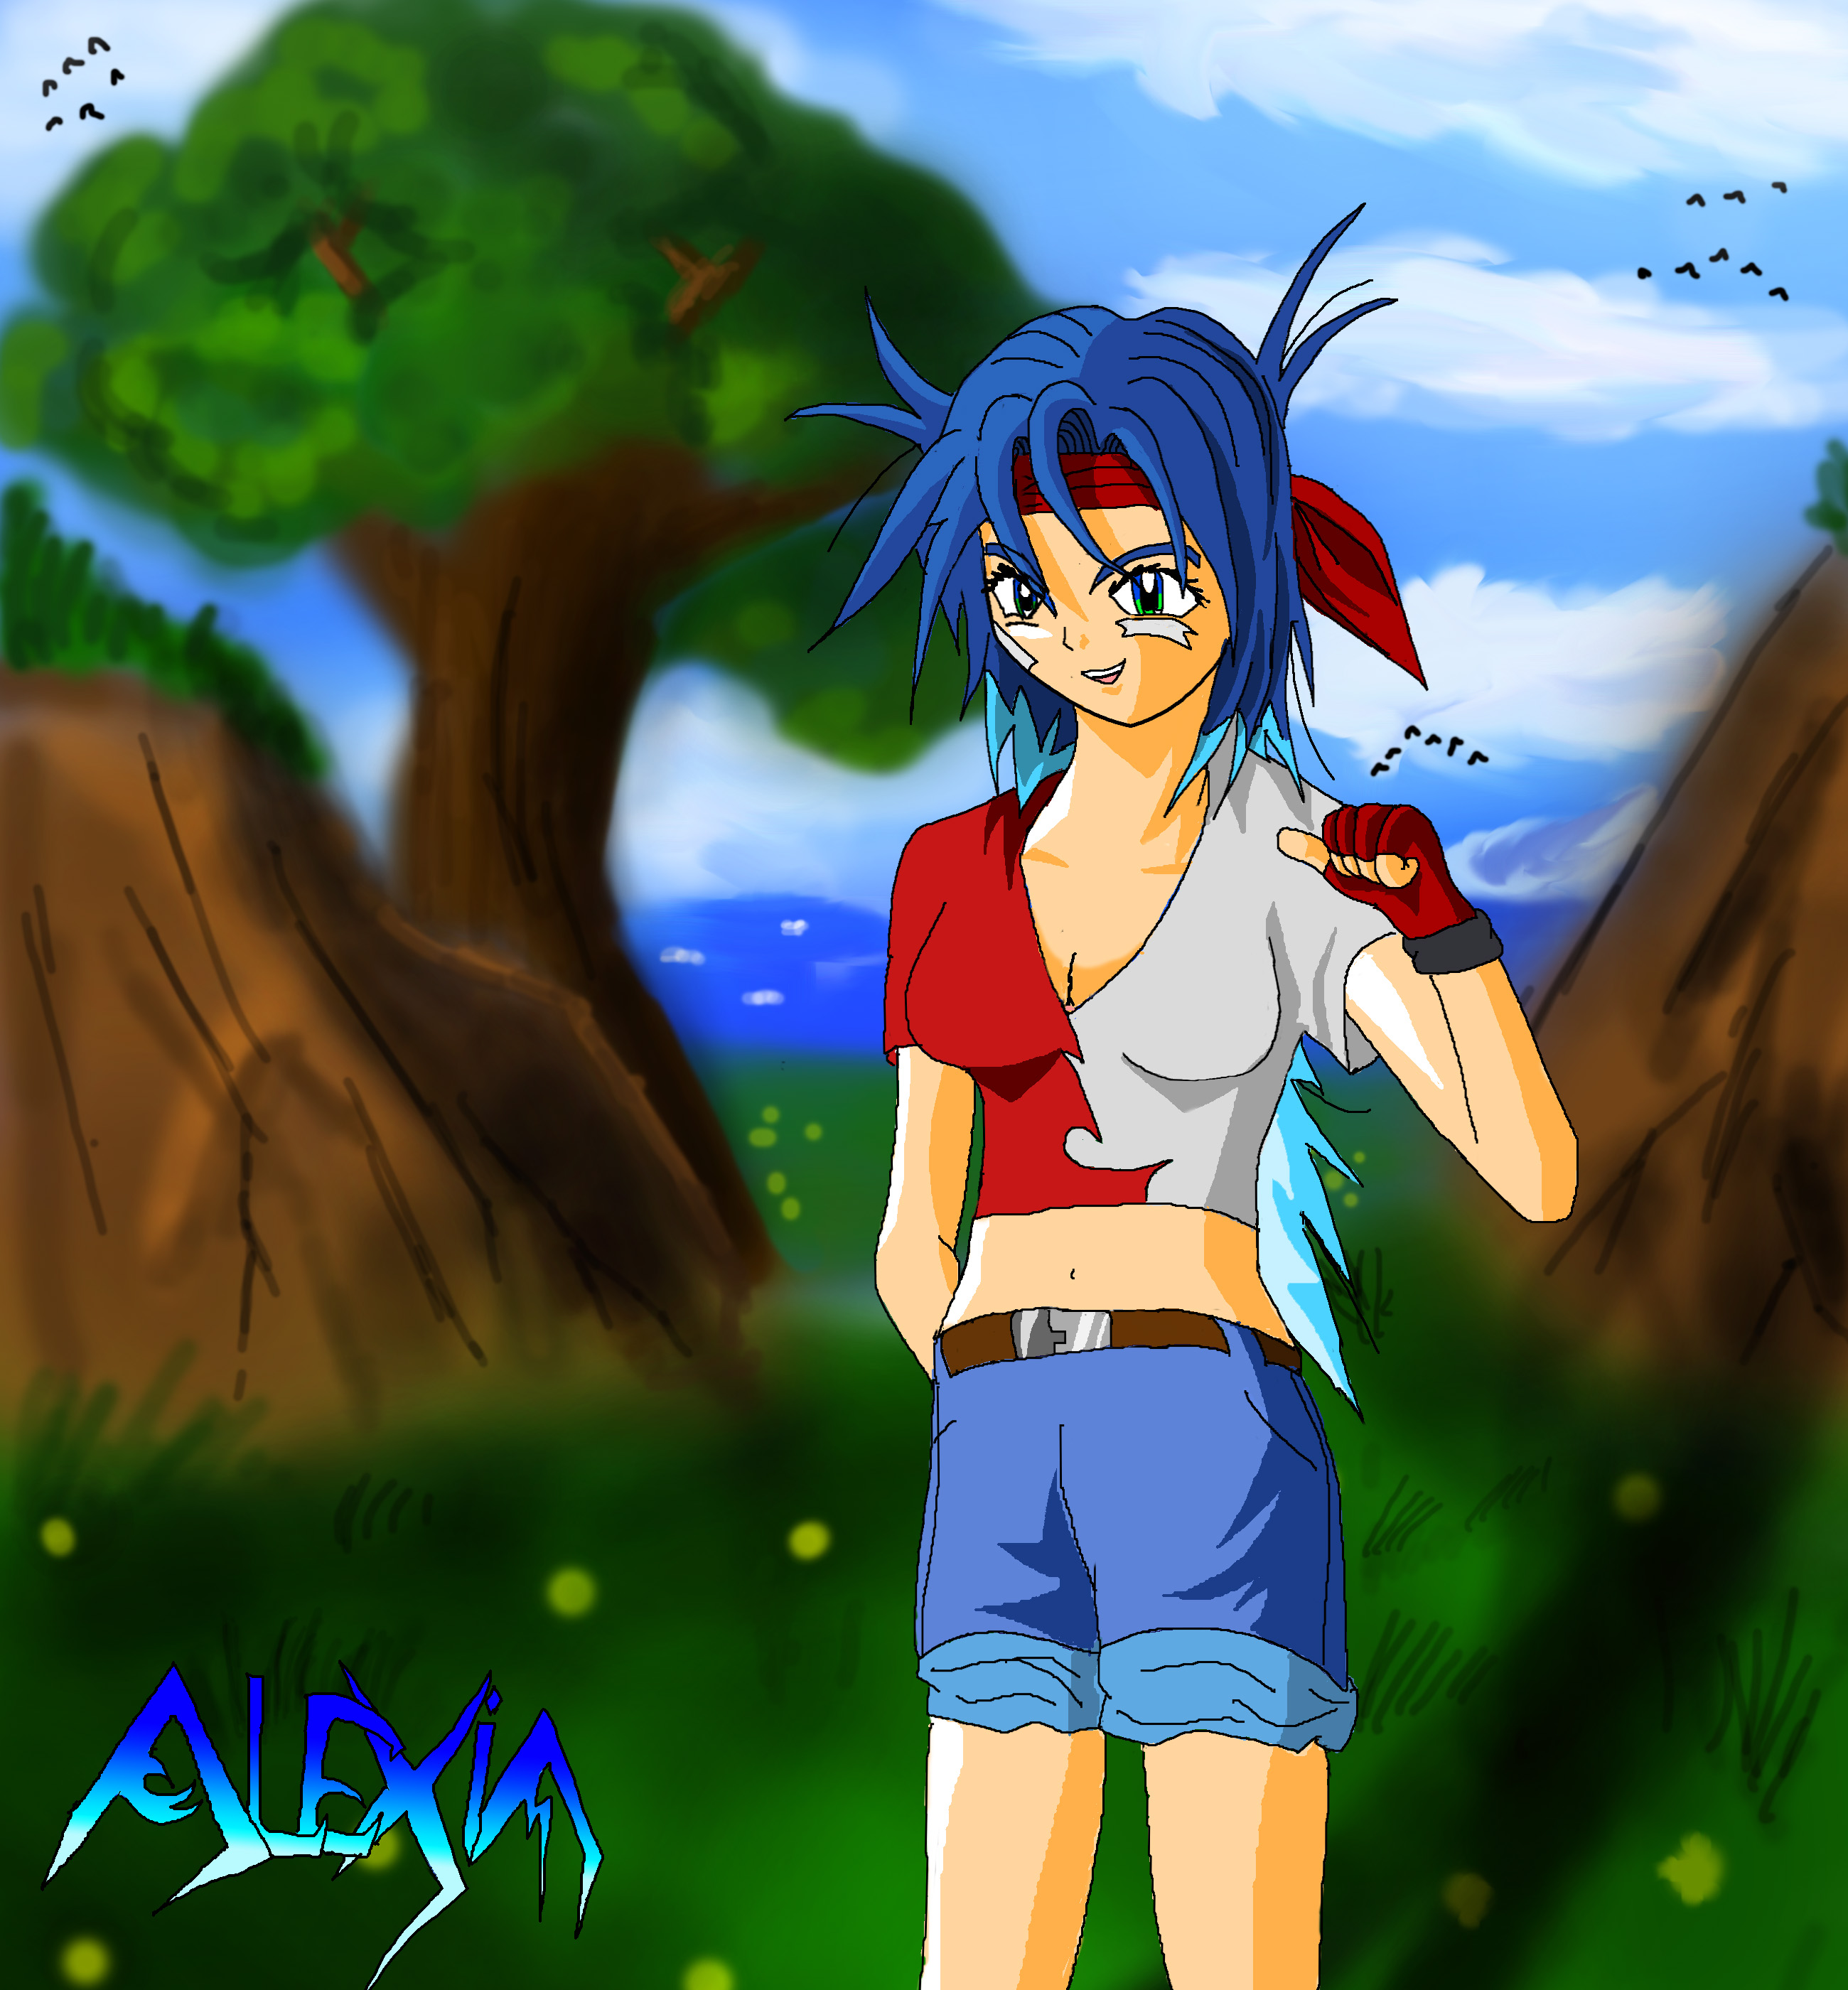 Alexia reference 2